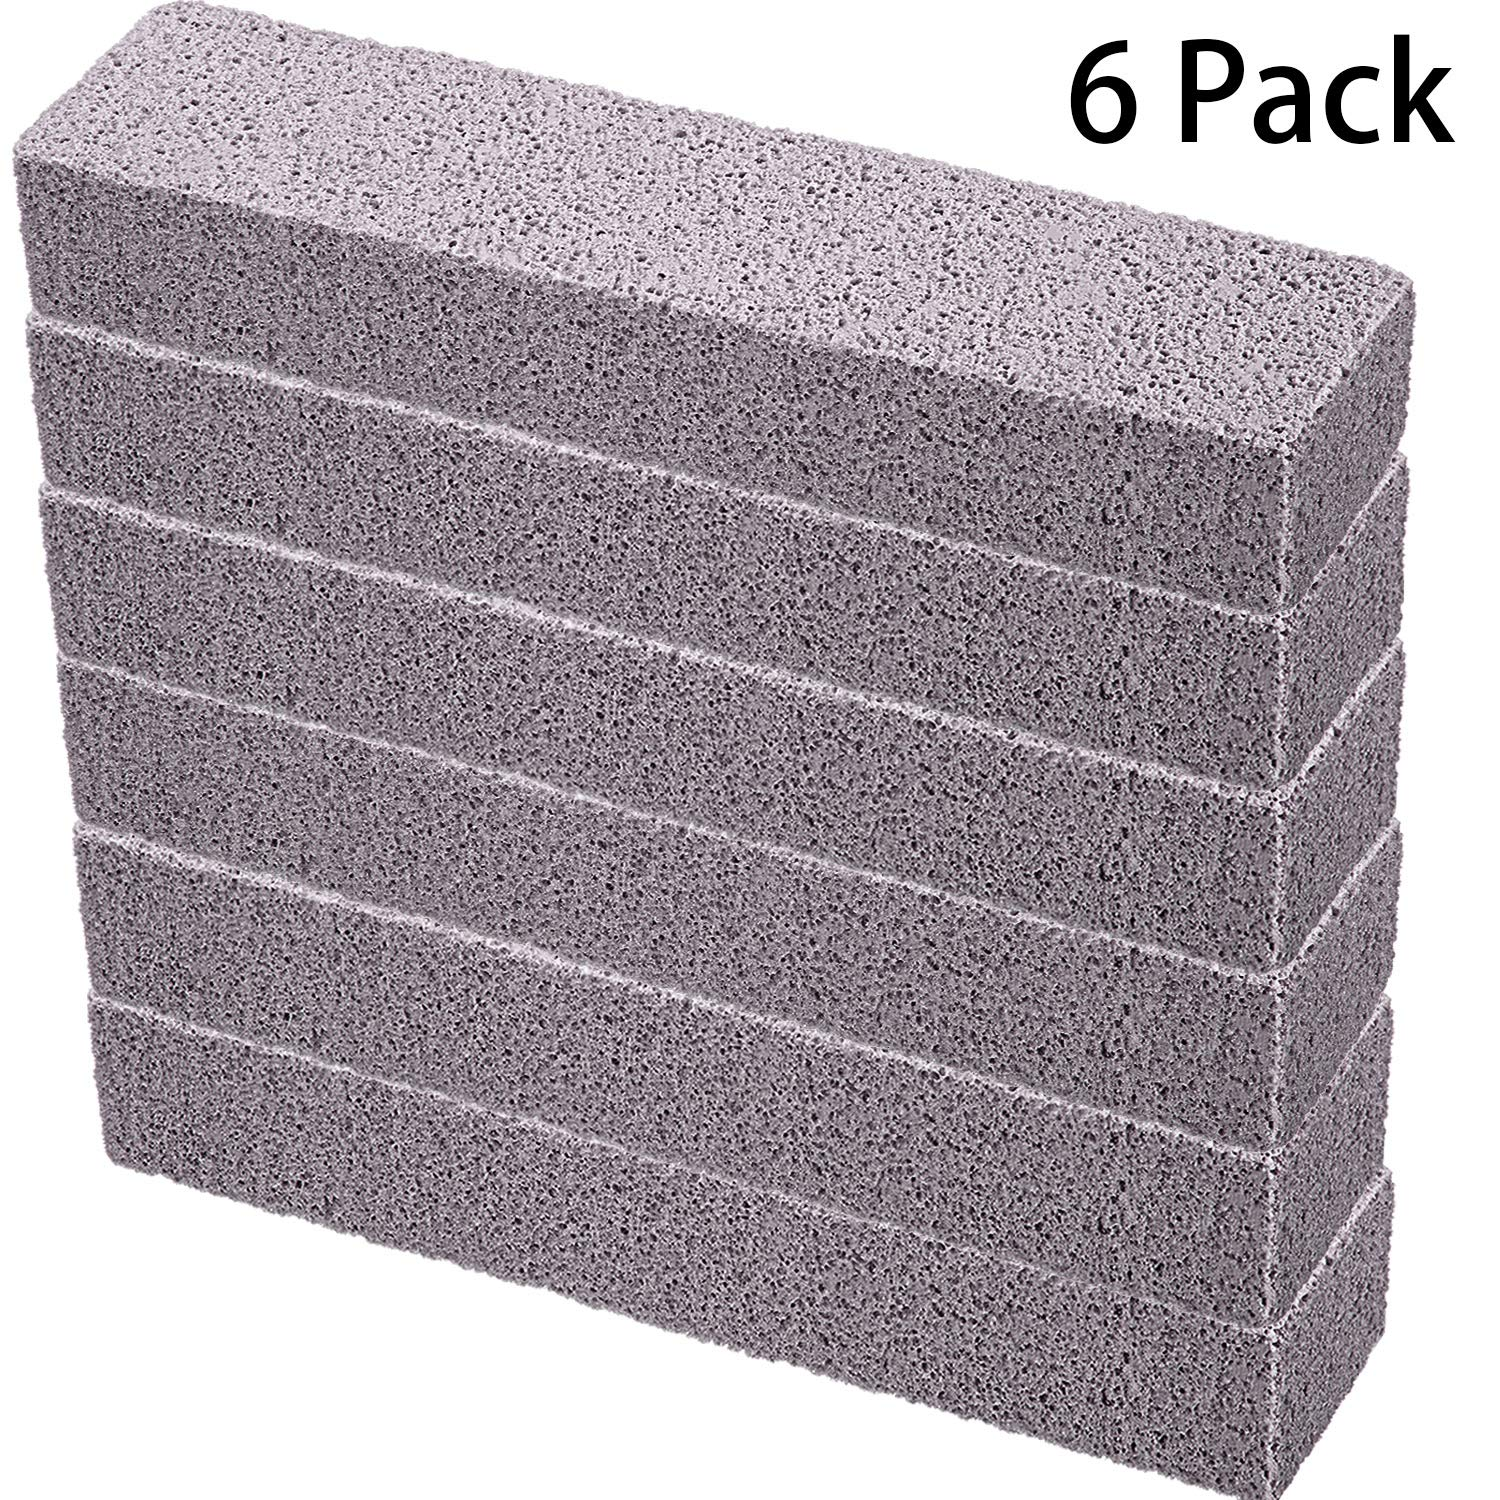 Pumice Sticks Pumice Scouring Pad for Cleaning, Grey Pumice Stick Cleaner for Removing Toilet Bowl Ring, Bath, Household, Kitchen, Spa, Pool, Household Cleaning, 5.9 x 1.4 x 0.9 Inch (6 Packs)